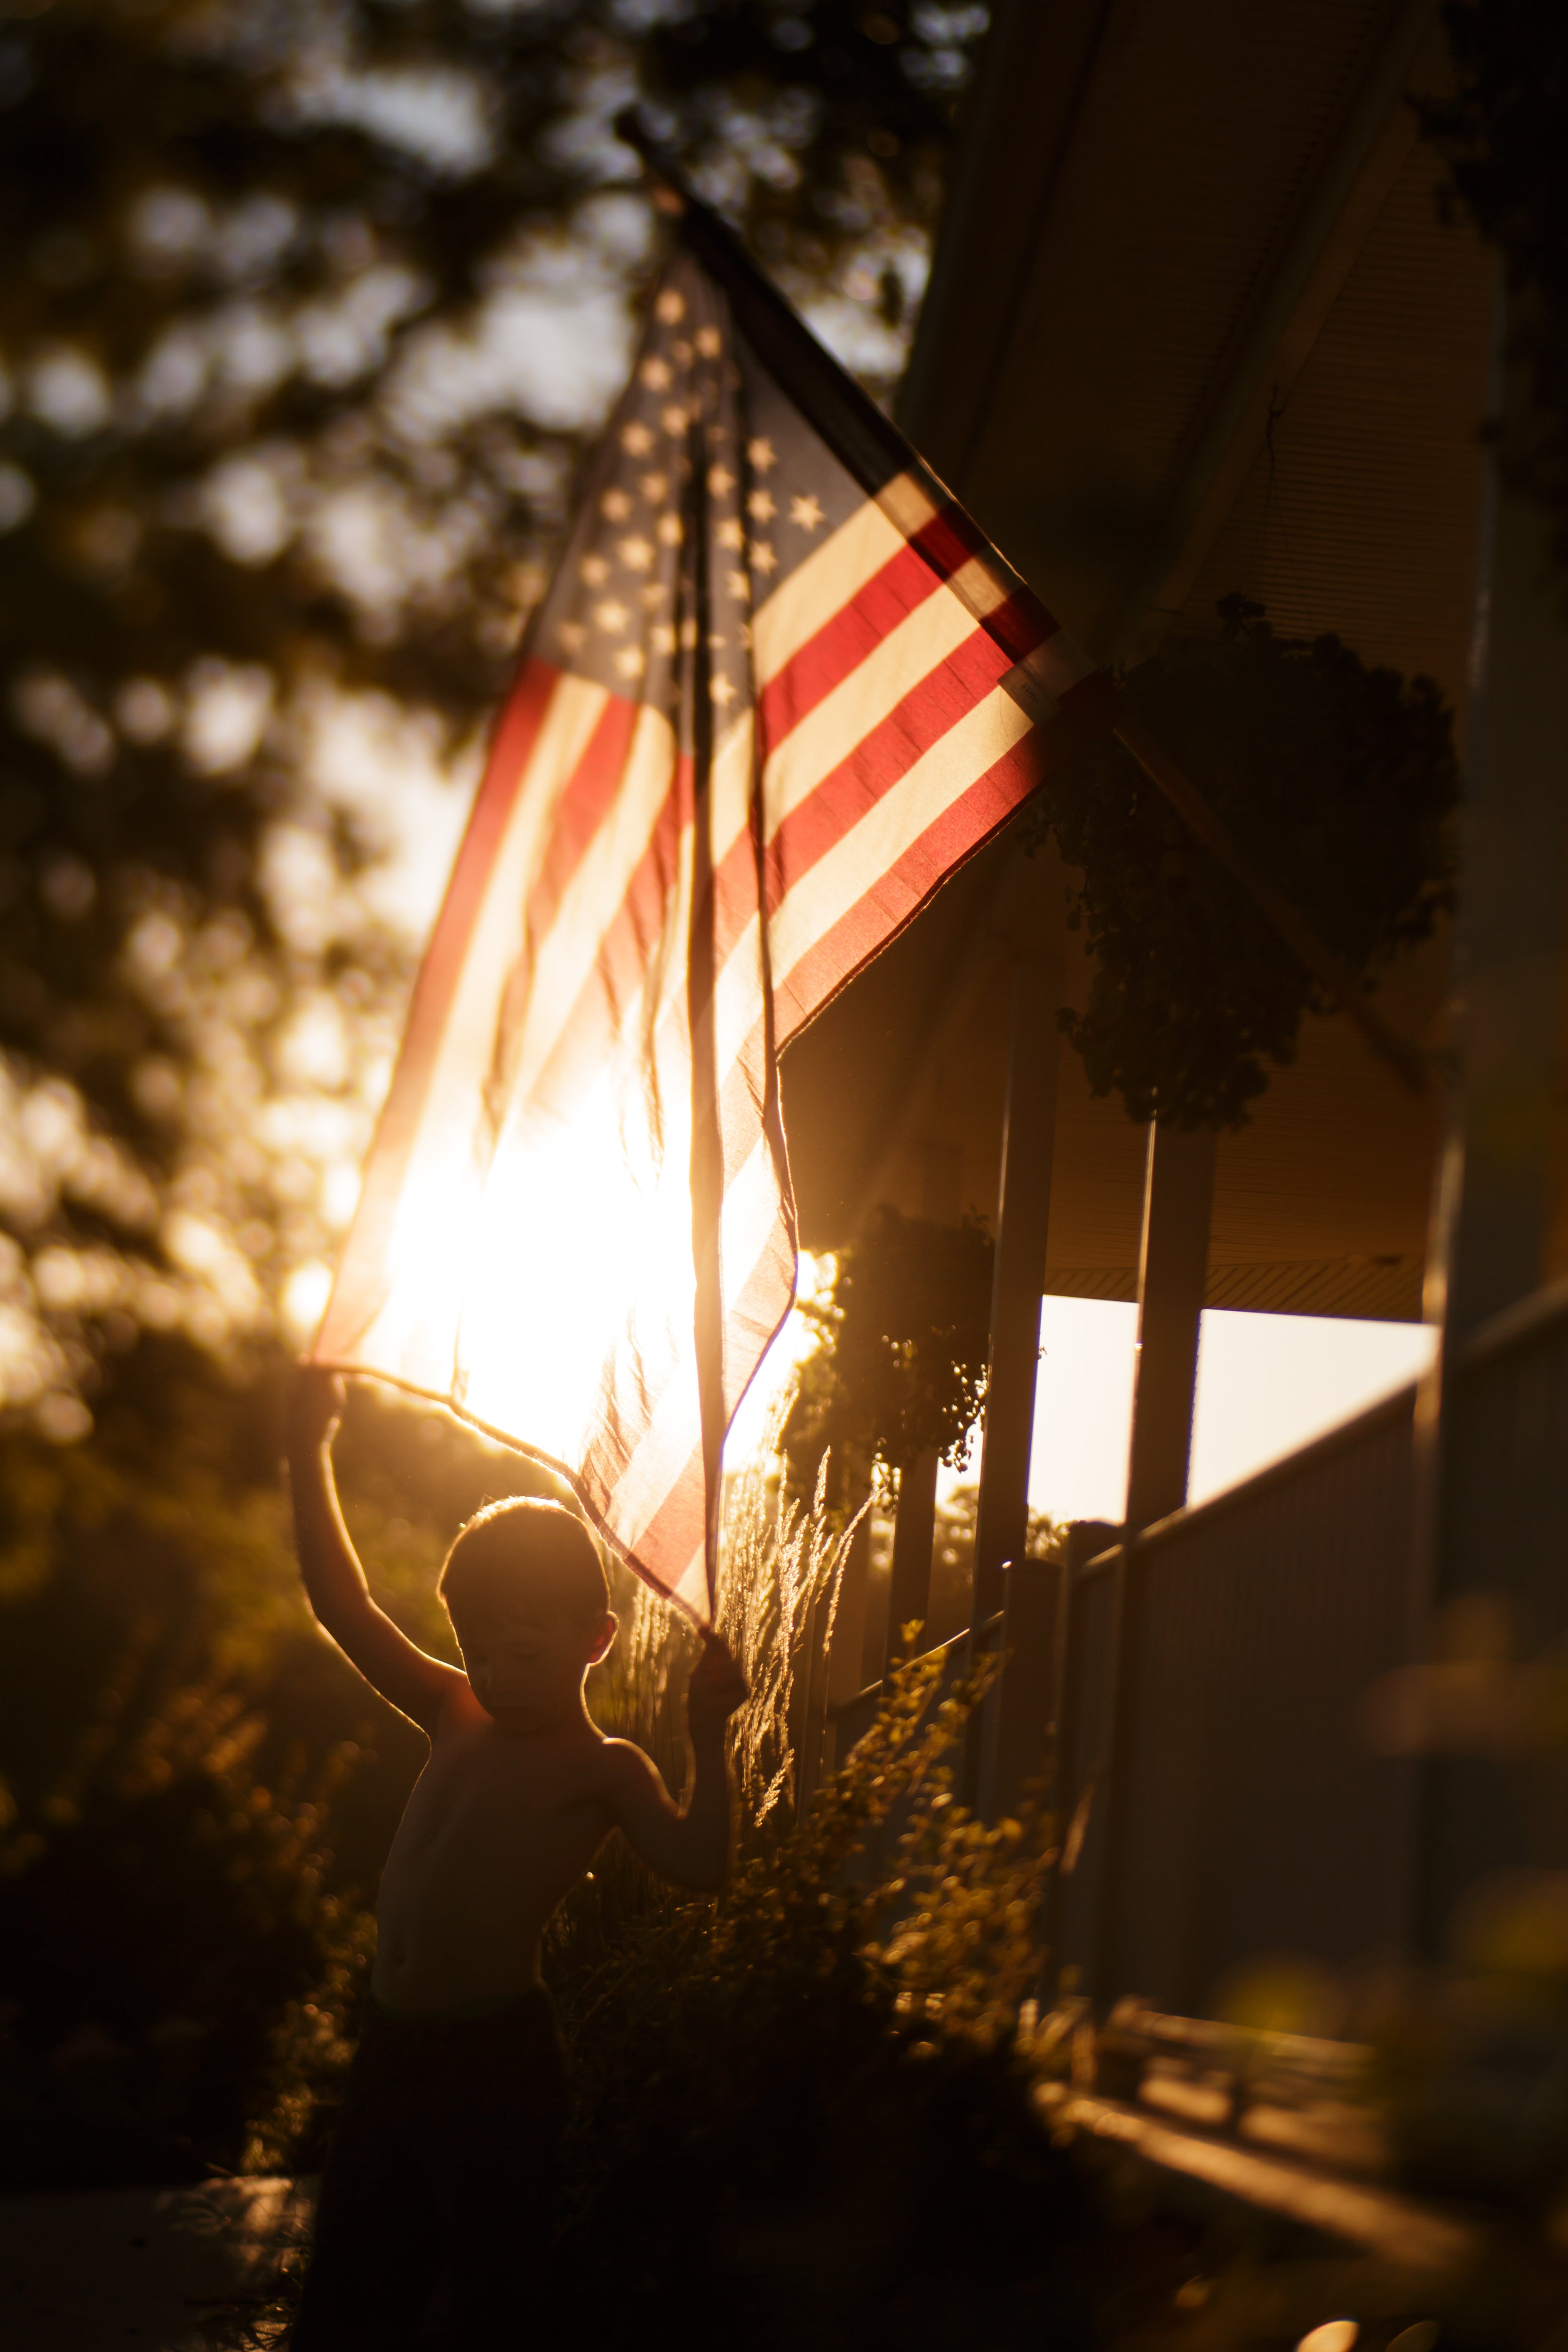 american flag and boy sunlight sunset journey story amy cyphers